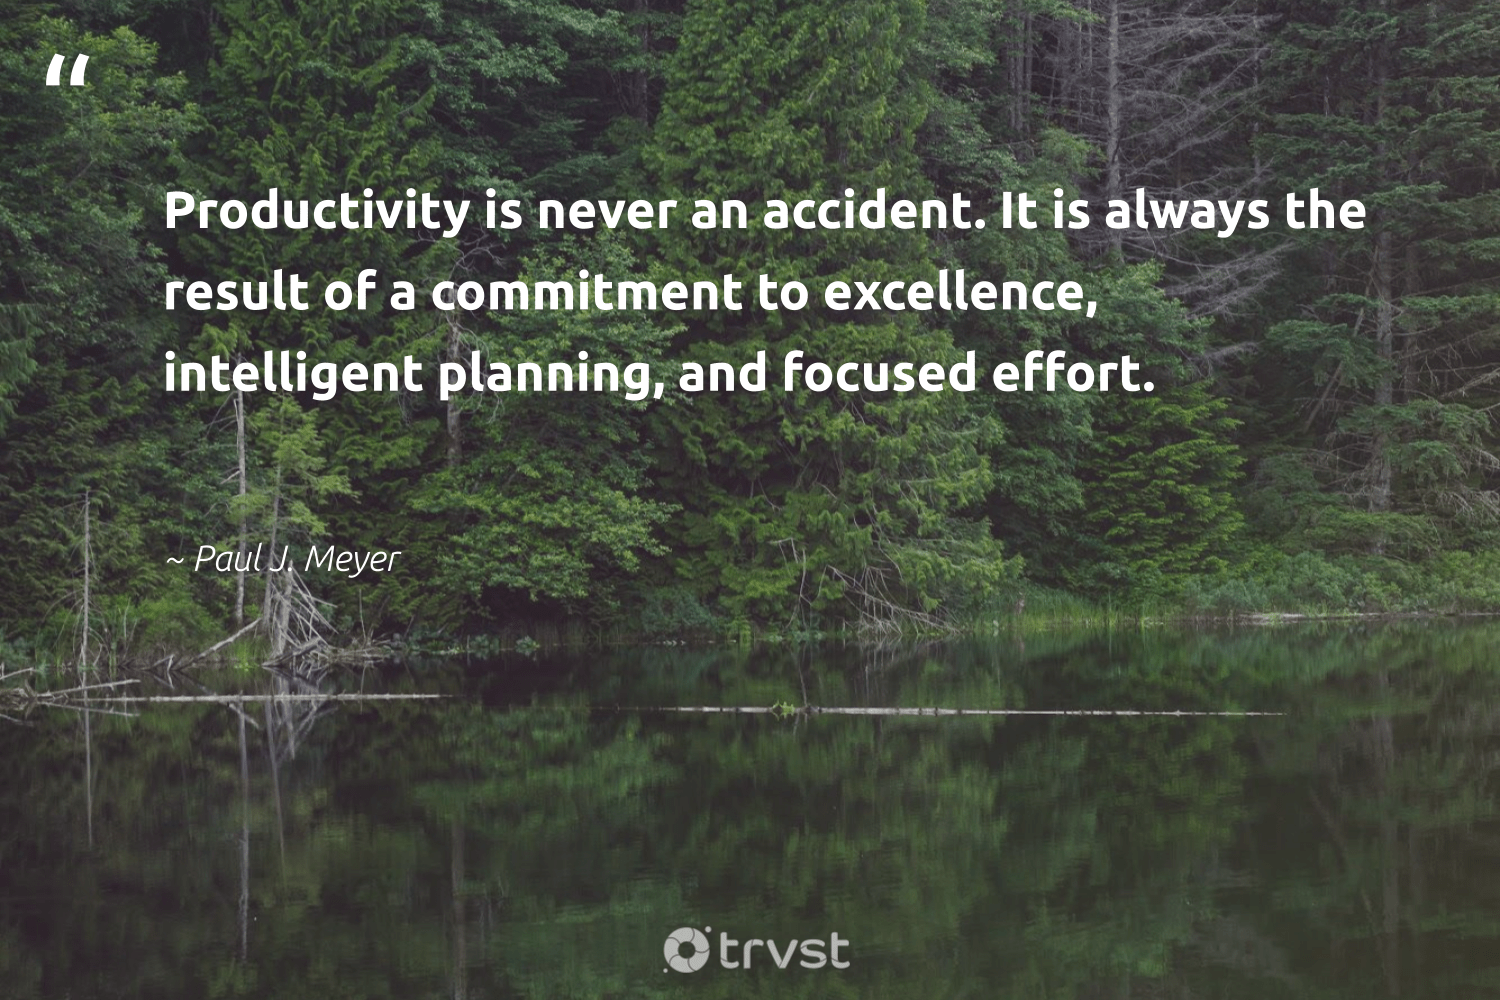 """""""Productivity is never an accident. It is always the result of a commitment to excellence, intelligent planning, and focused effort.""""  - Paul J. Meyer #trvst #quotes #productivity #motivational #nevergiveup #softskills #takeaction #motivation #futureofwork #begreat #socialimpact #timemanagement"""